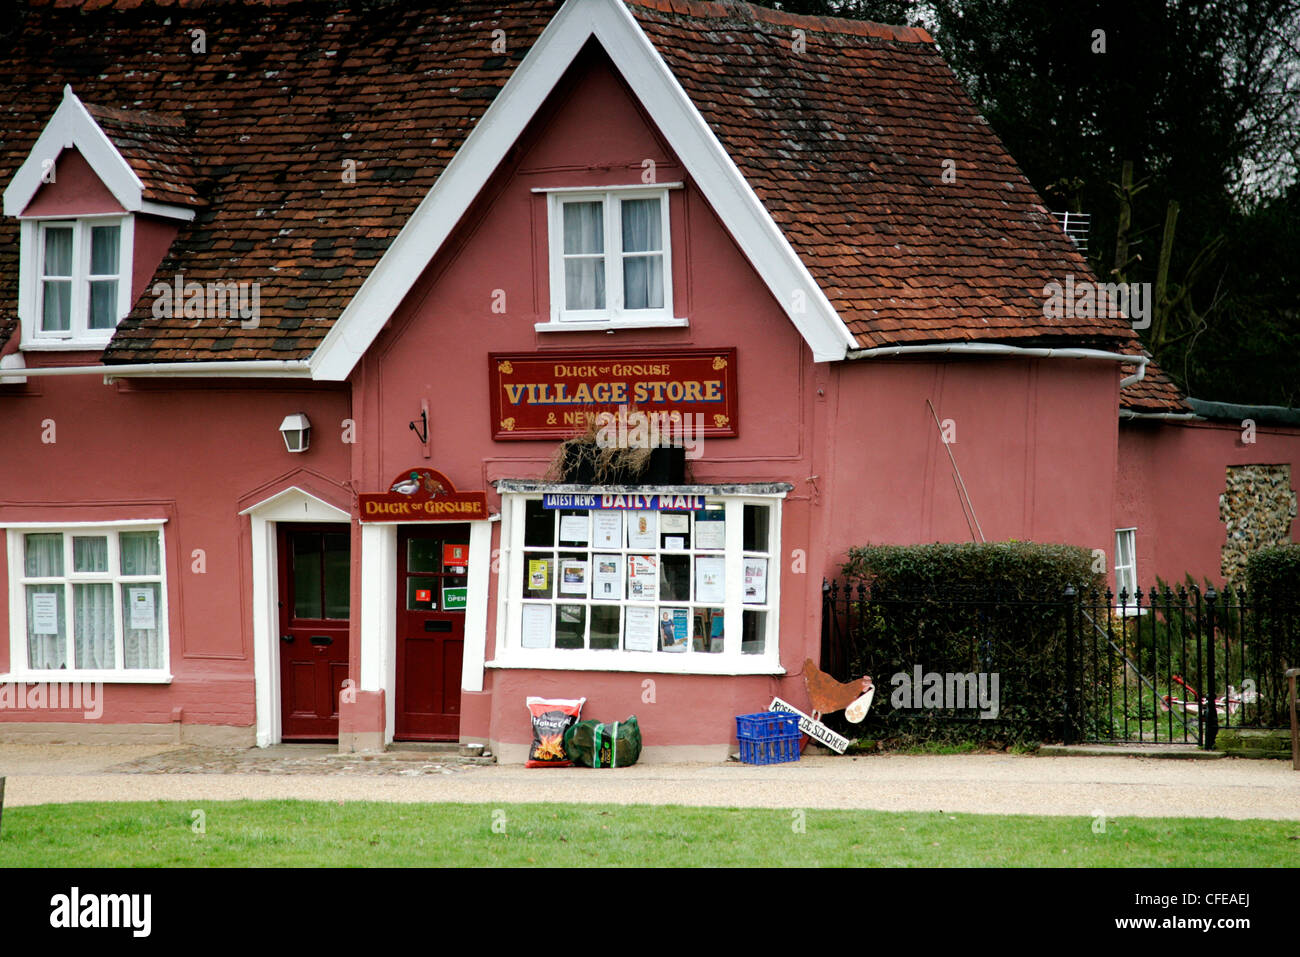 village store in Cavendish Suffolk - Stock Image